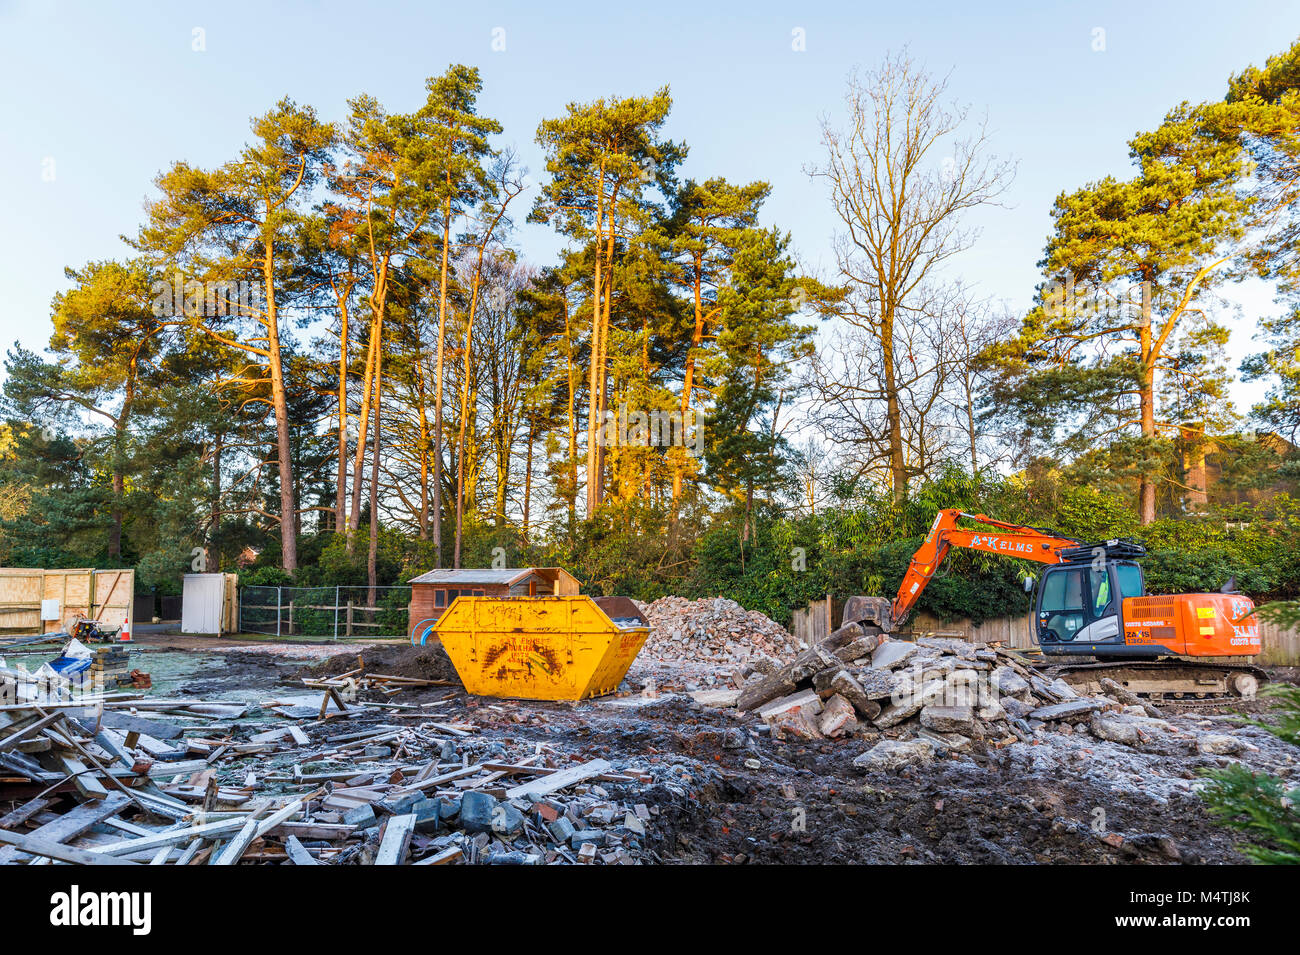 Construction site with orange heavy plant tracked mechanical excavator and skip: remains of demolition of a residential - Stock Image